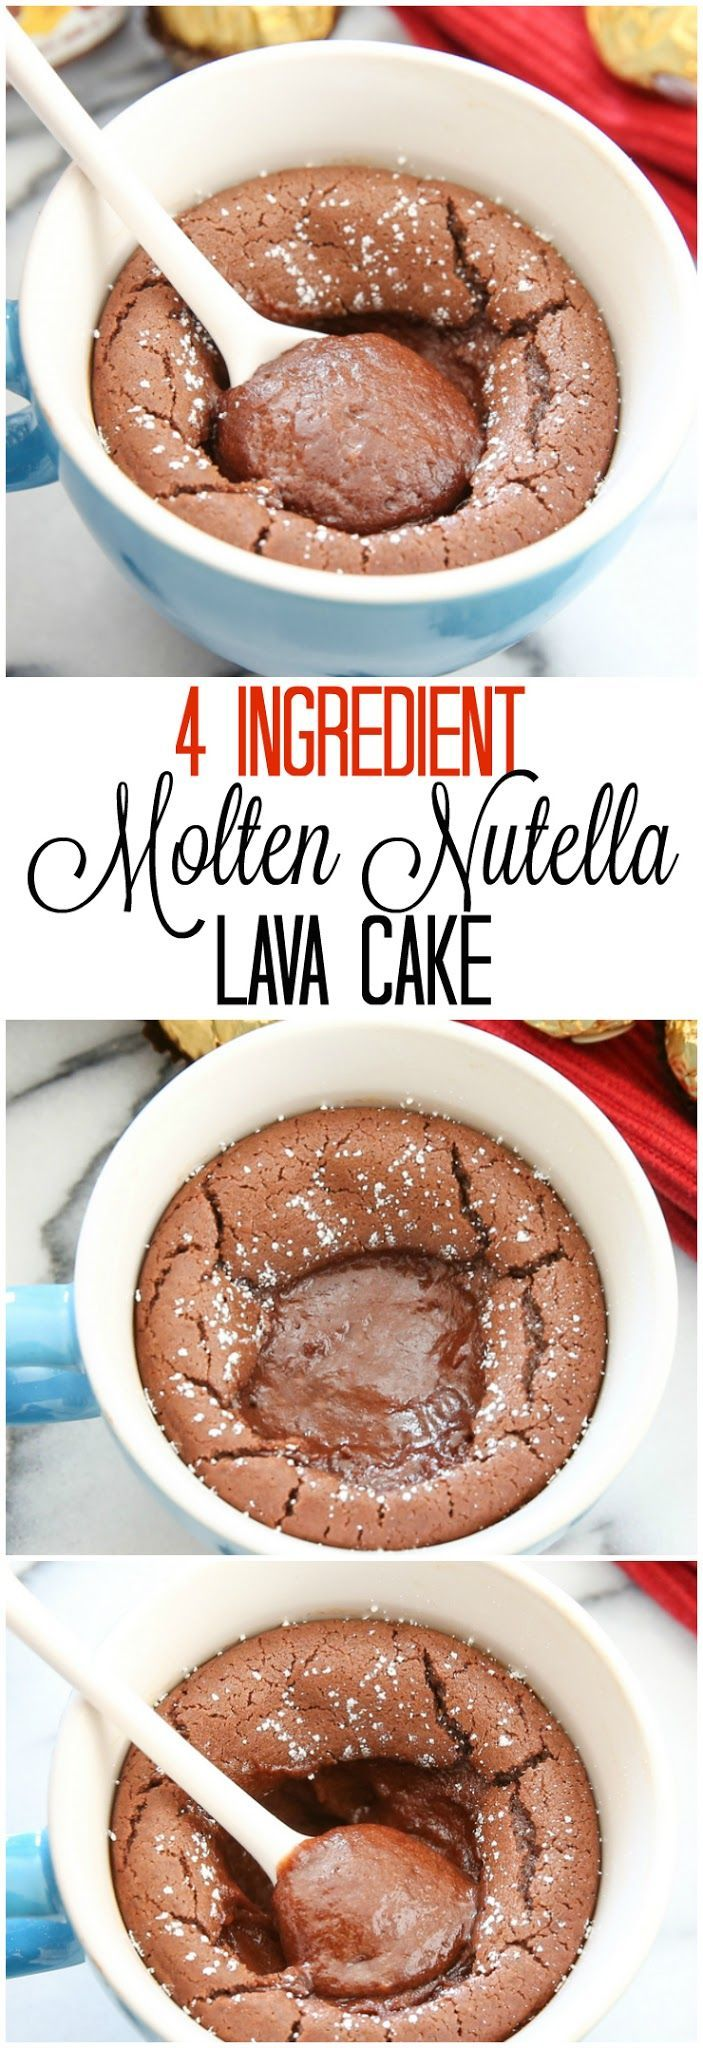 4 Ingredient Molten Nutella Lava Mug Cake is part of Nutella recipes - This single serving molten Nutella lava mug cake couldn't be easier to make with just four ingredients!